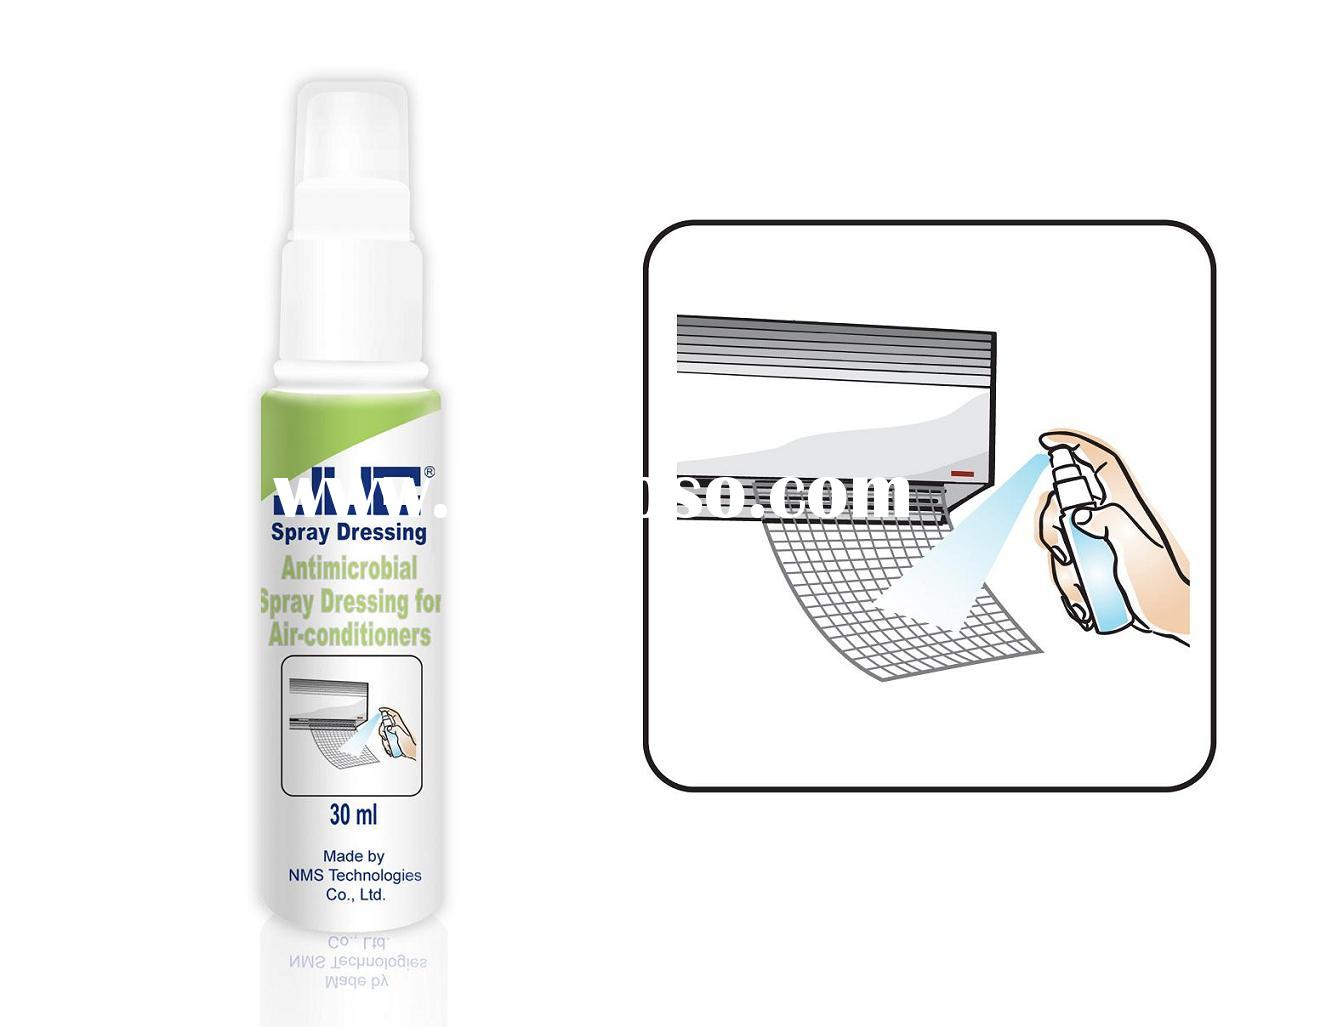 Antimicrobial Spray Dressing For Air-conditioners